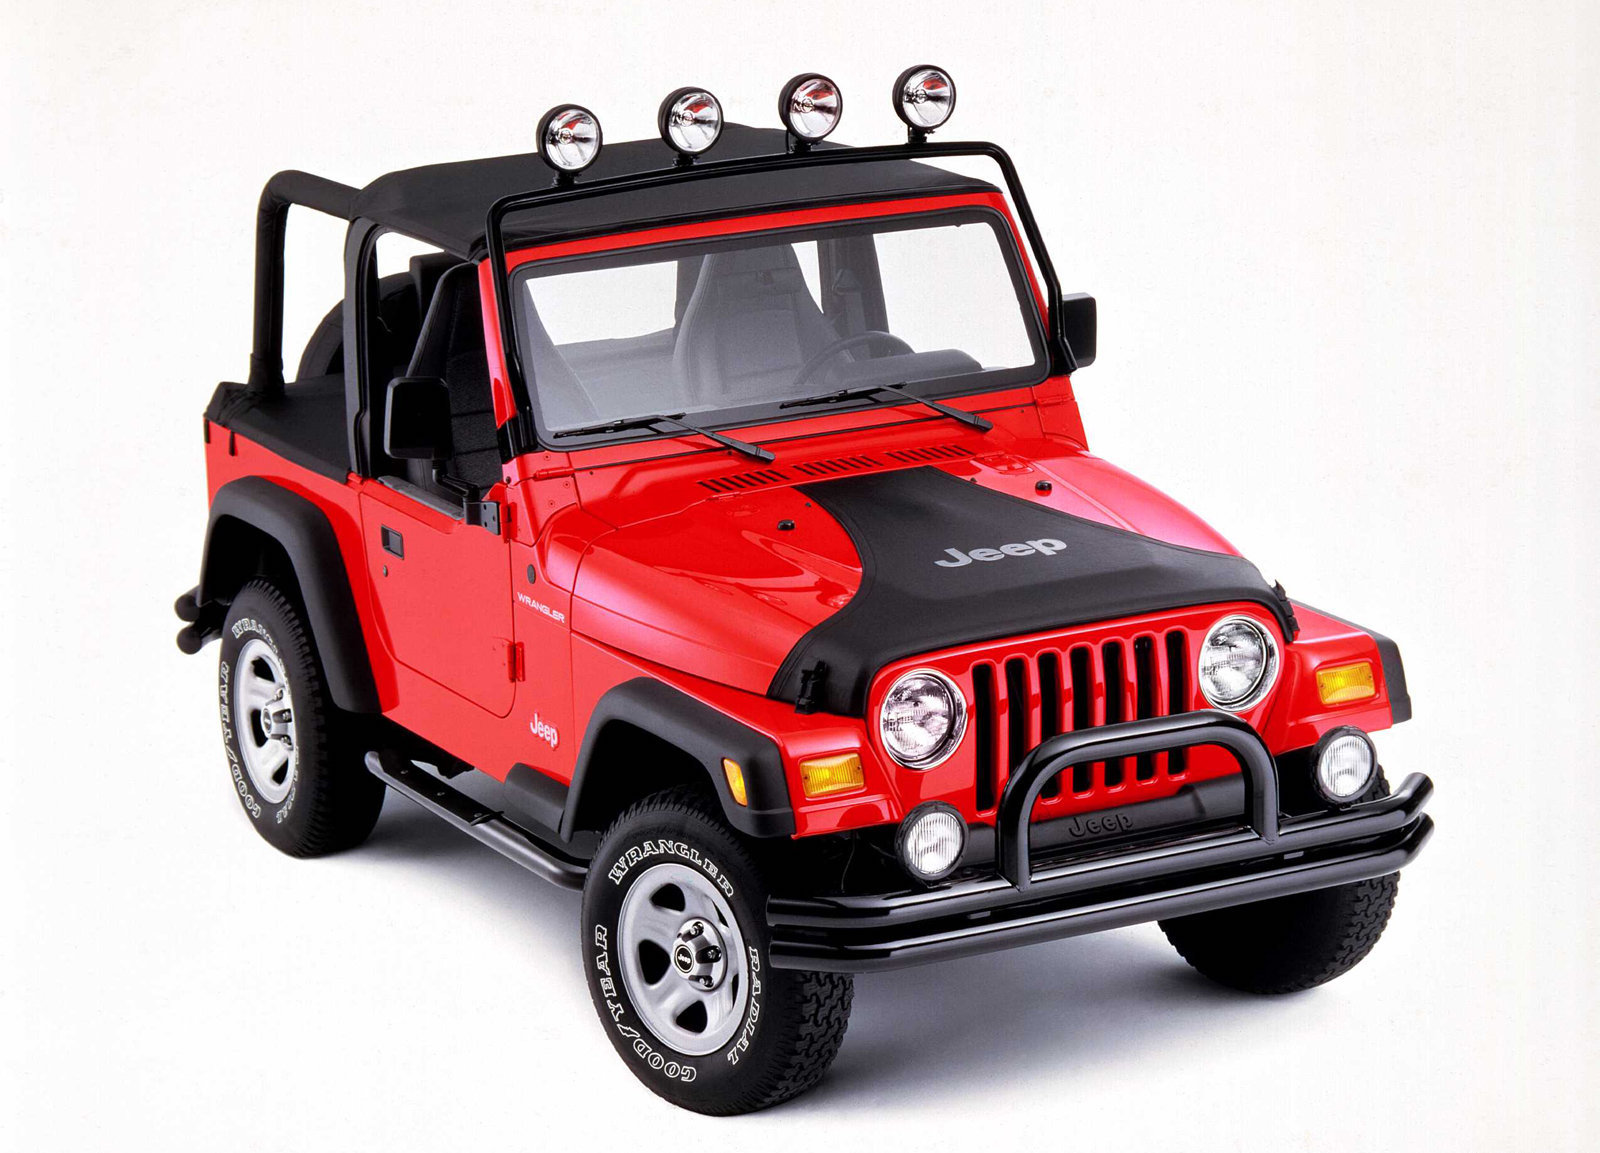 1997 Jeep Wrangler red accessories